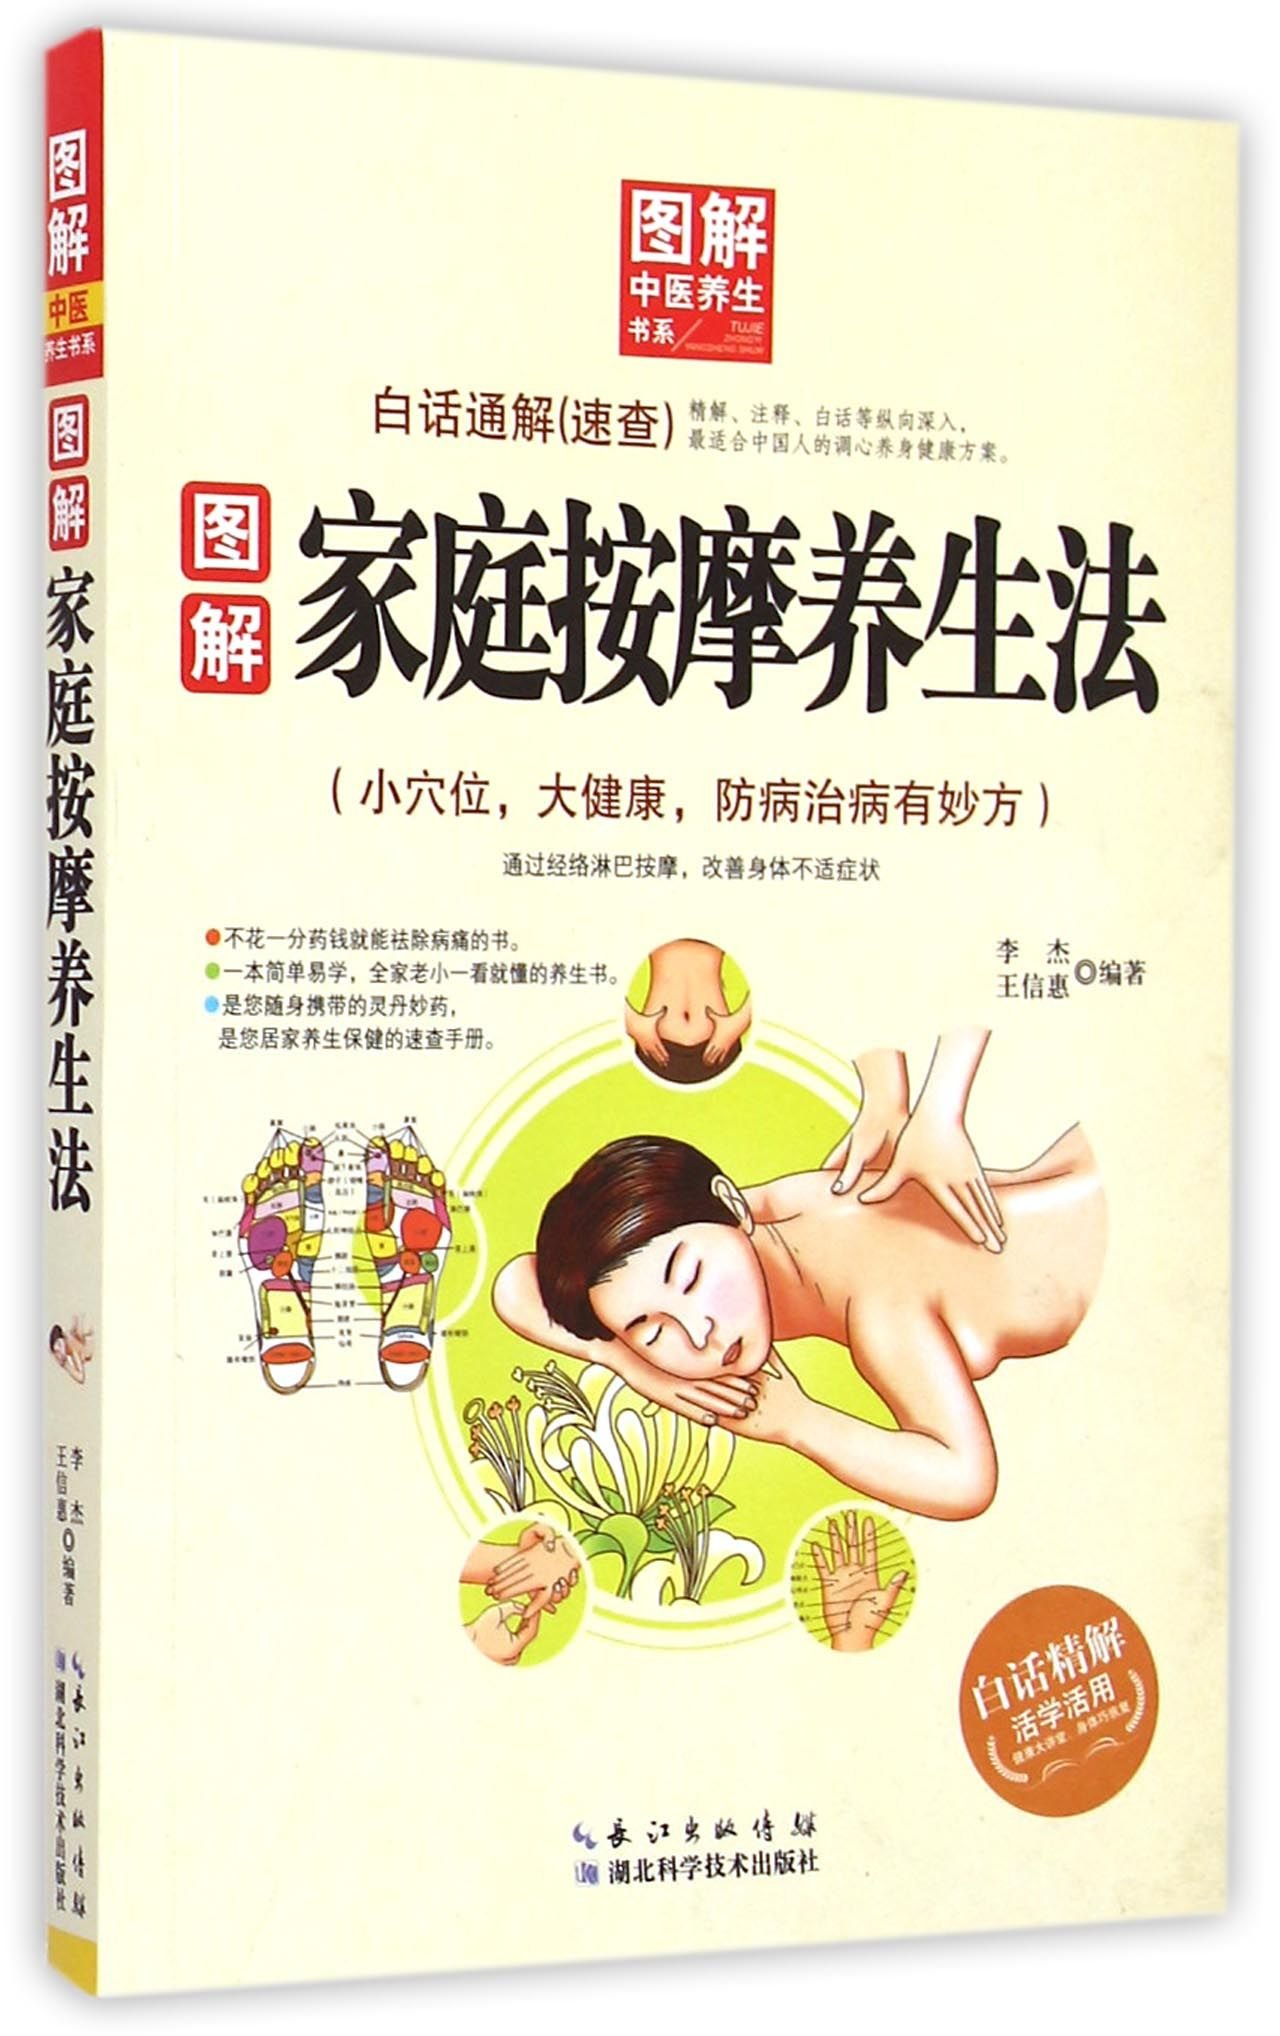 Download Illustration of Family Massage Regimen (Chinese Edition) ebook